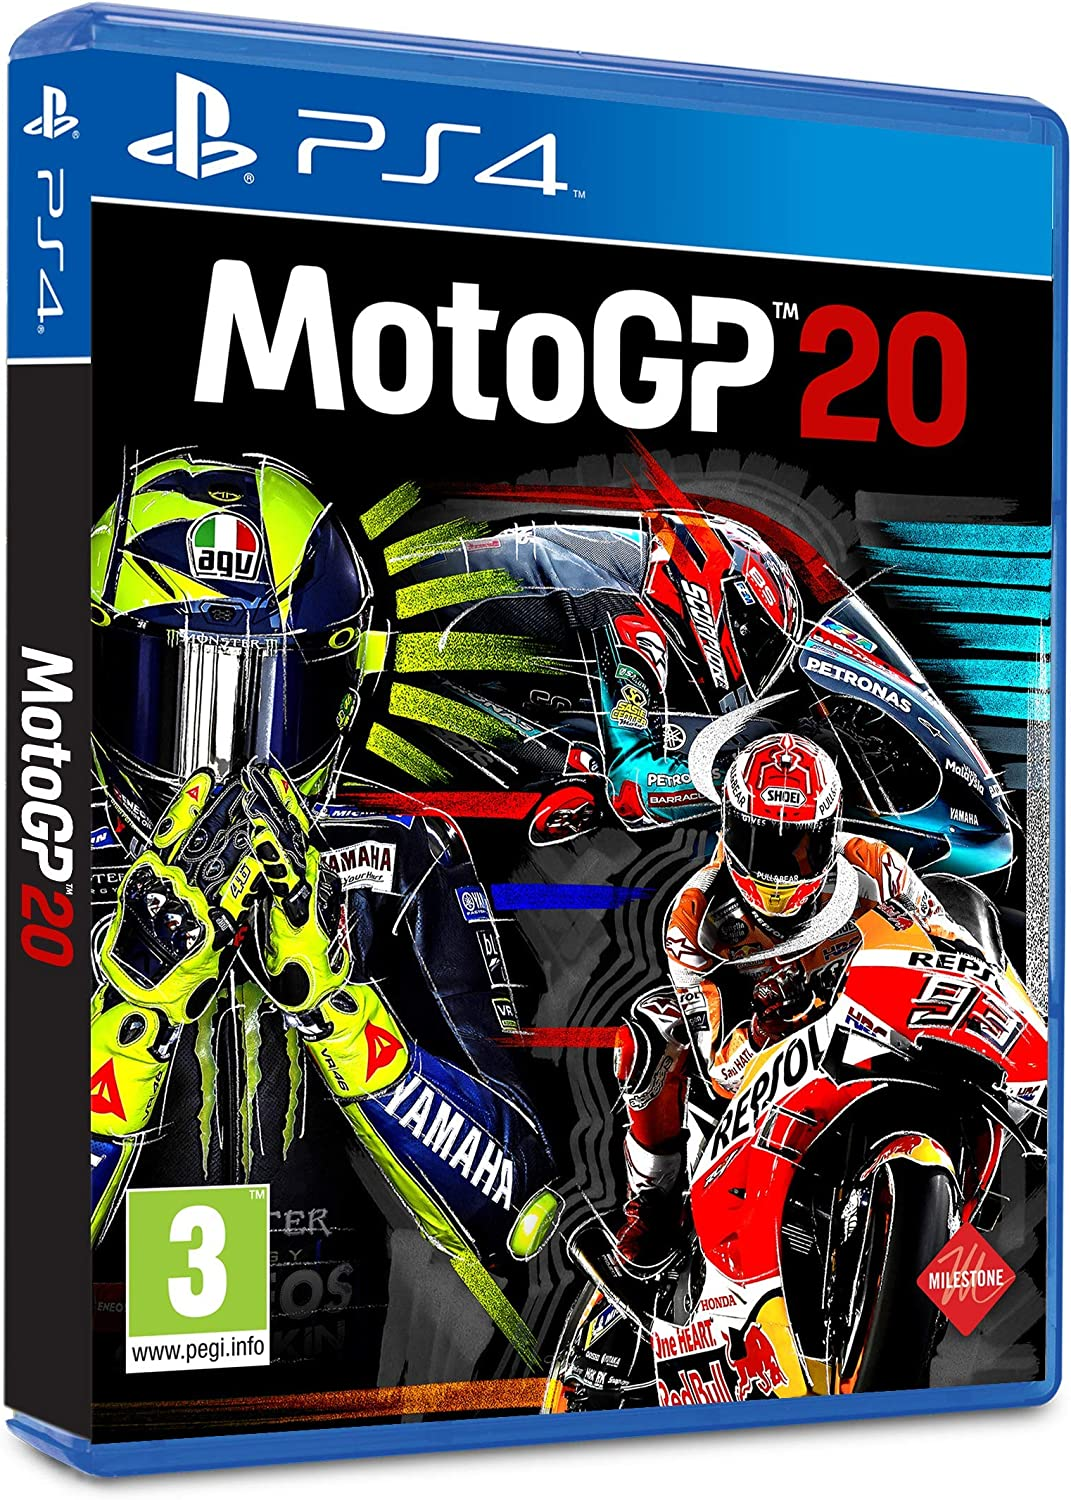 MotoGP 20 - Esclusiva Amazon.It (con DLC VIP Multiplier Pack ...